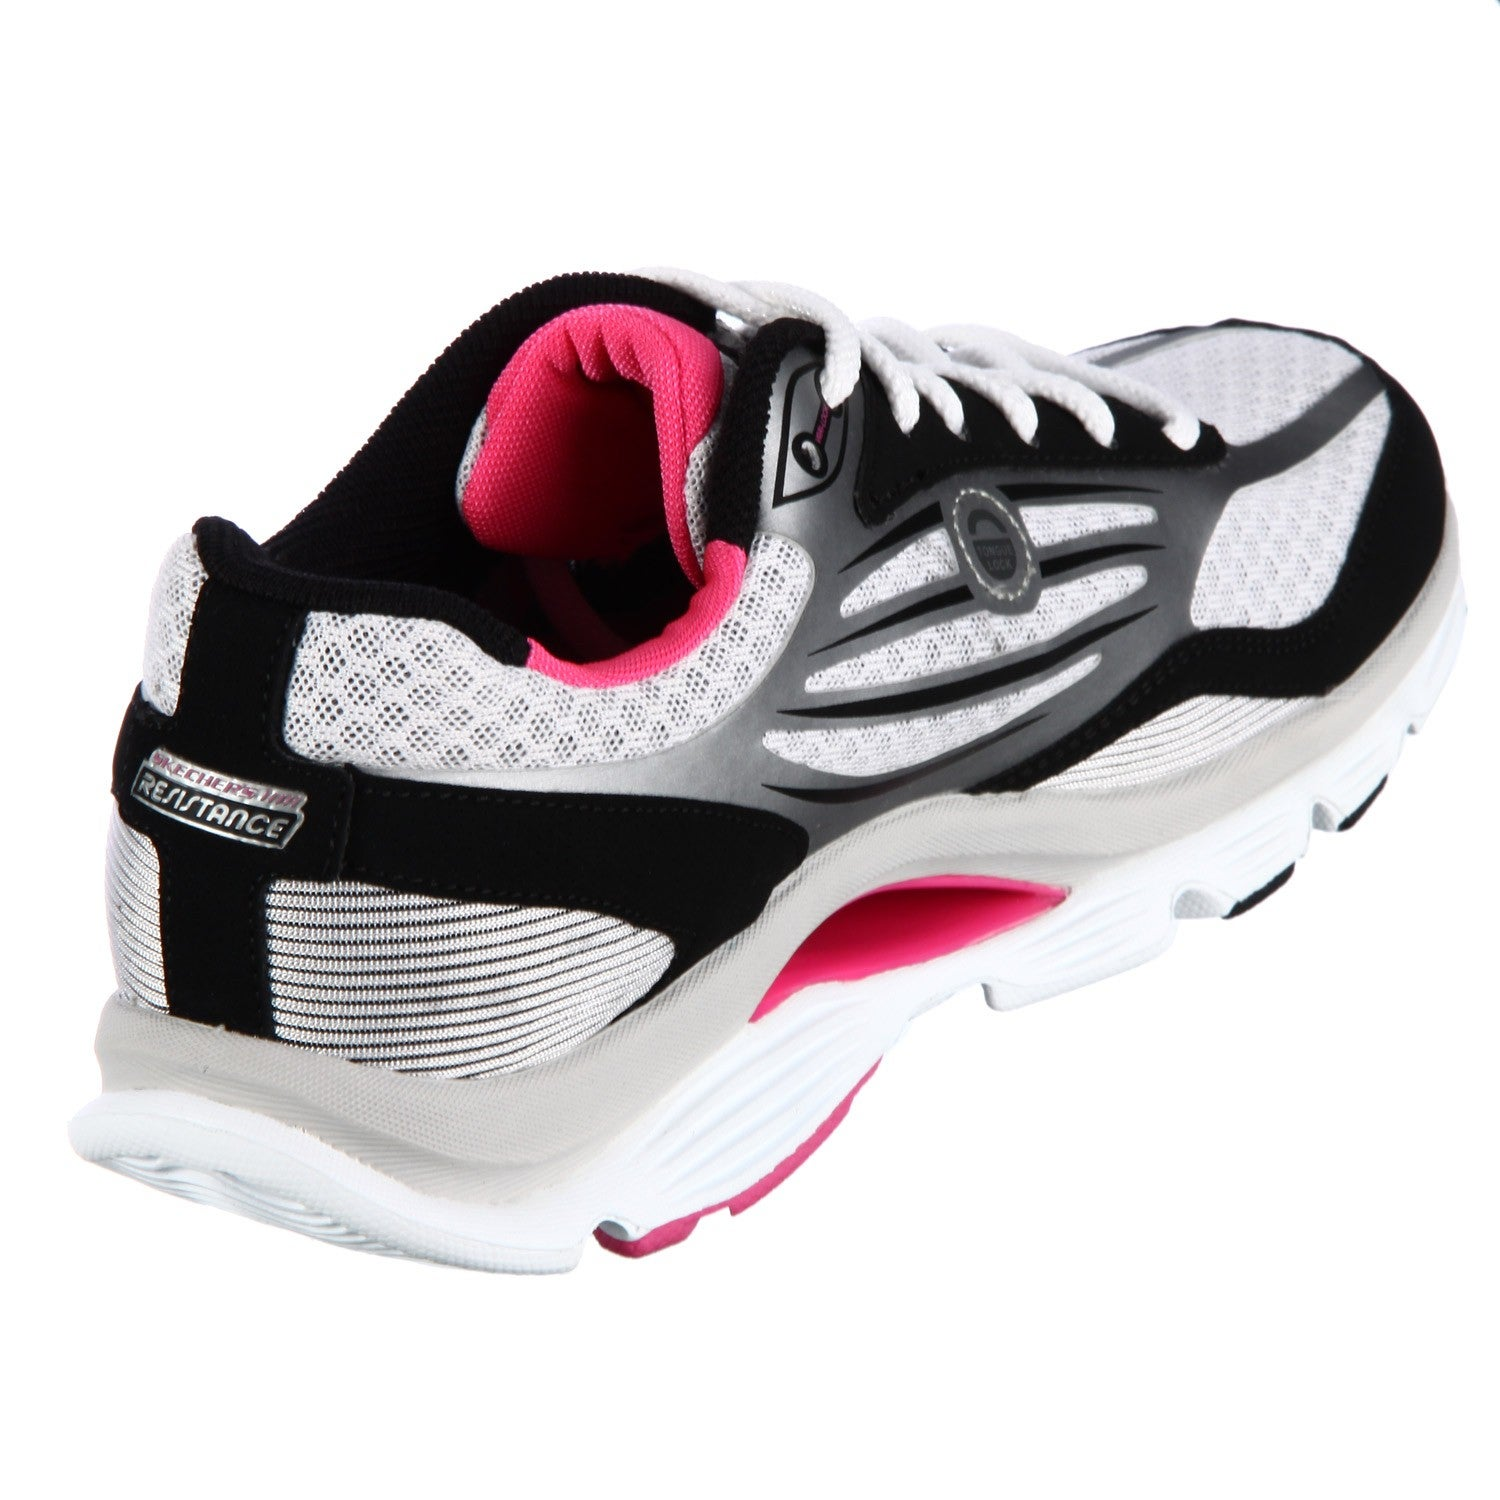 Skechers USA Women's 'Pro Speed' Resalyte Resistance Runner Shoes